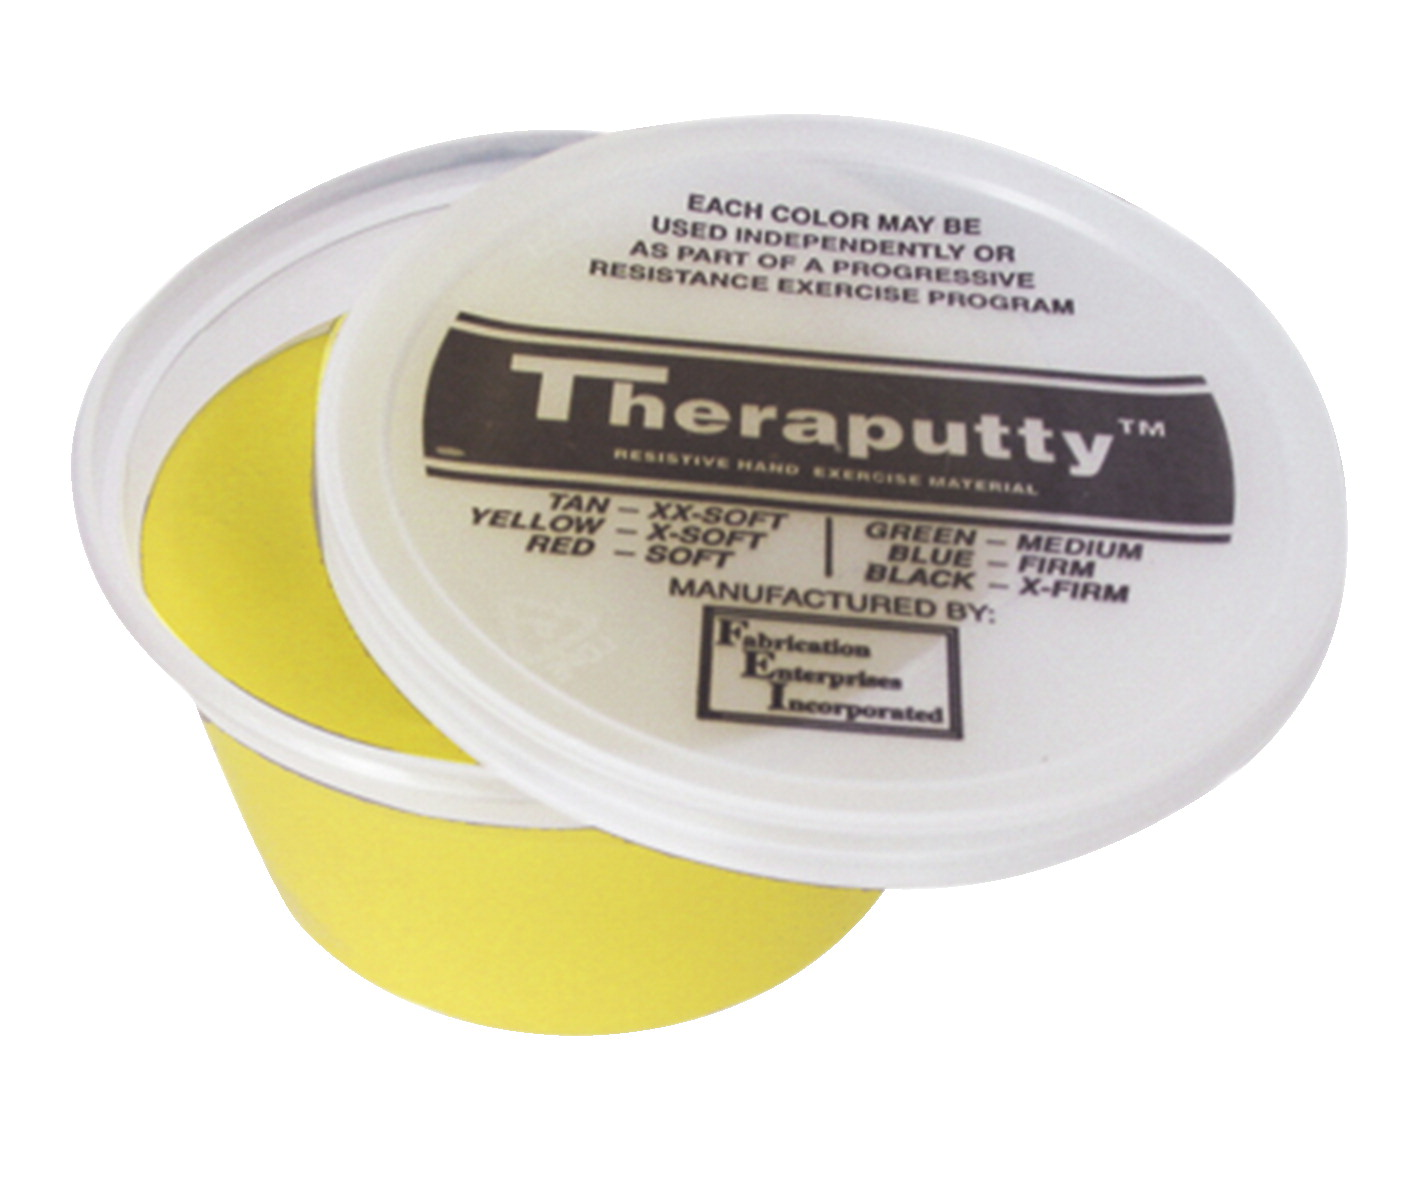 Cando Extra Soft Resistance Theraputty, Banana Scented, 2 Ounces, Yellow